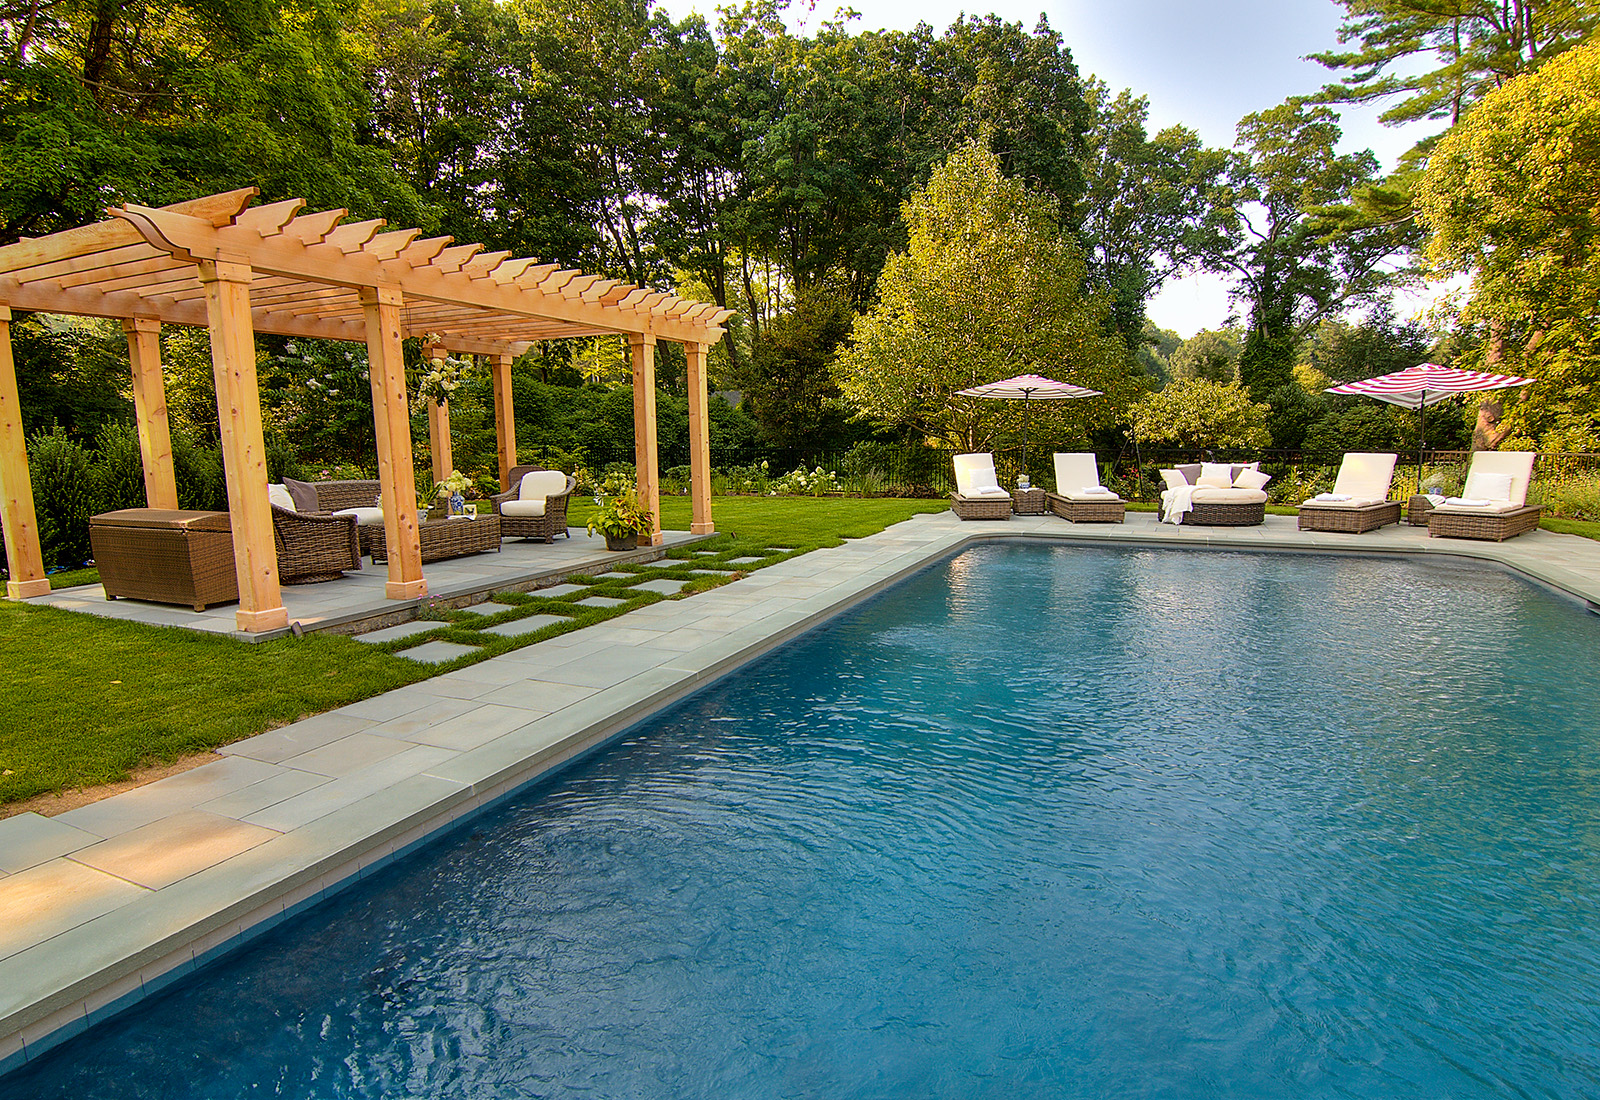 Relaxing outdoor entertaining area with gunite pool.